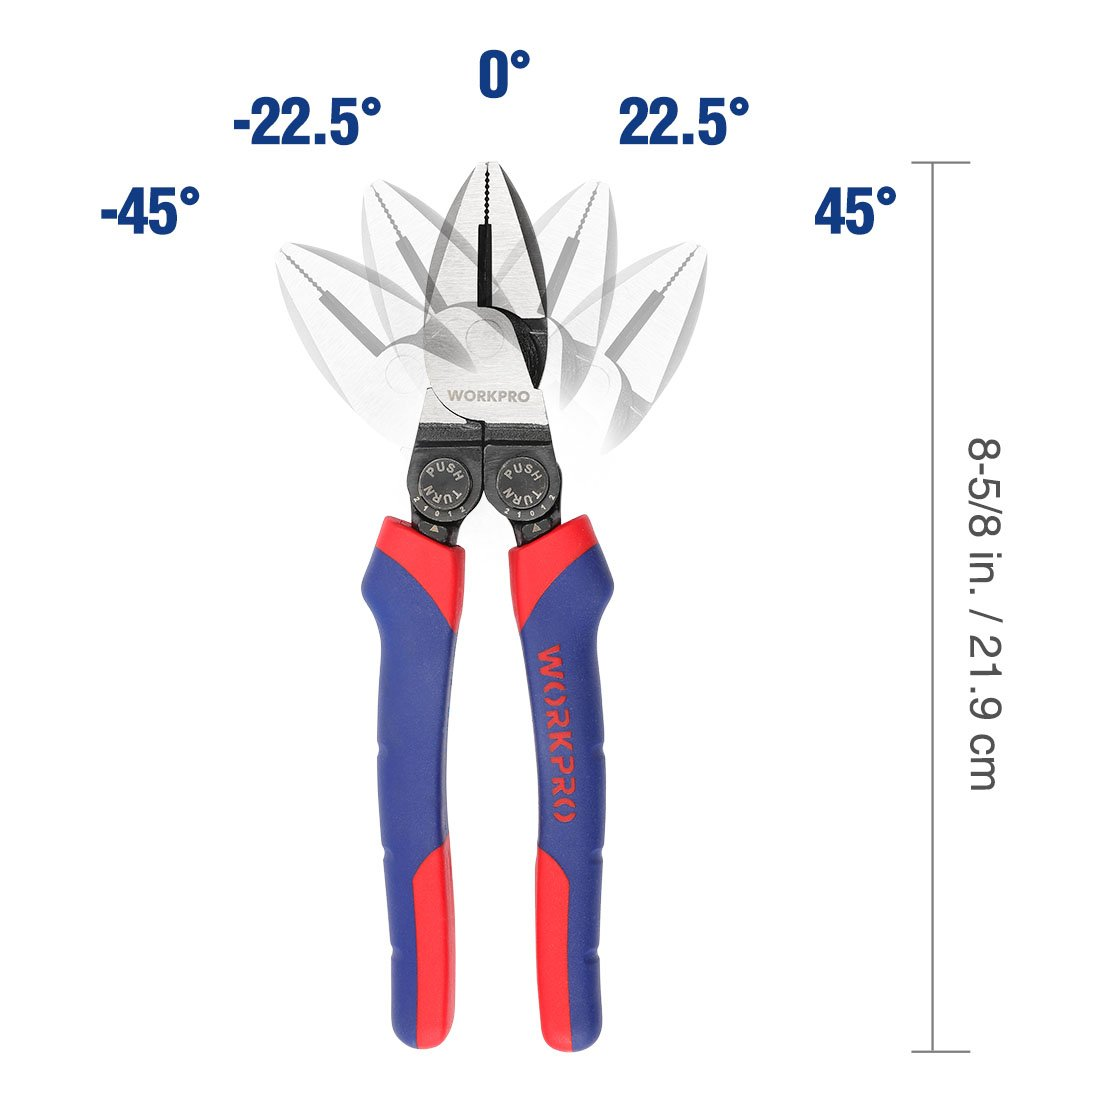 WORKPRO High Leverage Linesman Pliers Multi Purpose with 5-Position Adjustable Angle Offset, 8-inch - - Amazon.com